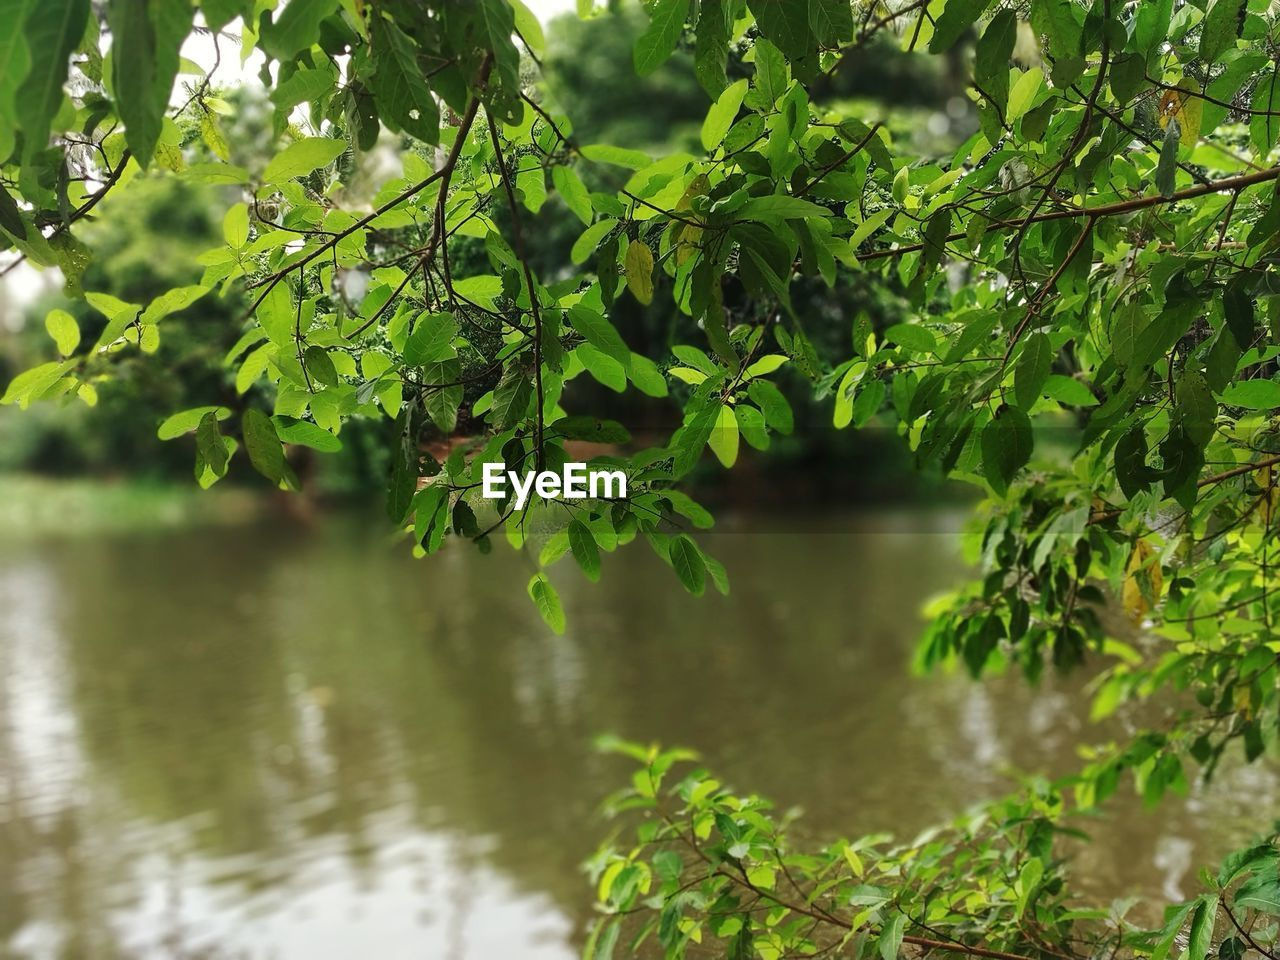 plant, water, green color, tree, growth, leaf, plant part, nature, beauty in nature, no people, tranquility, day, branch, lake, outdoors, focus on foreground, tranquil scene, scenics - nature